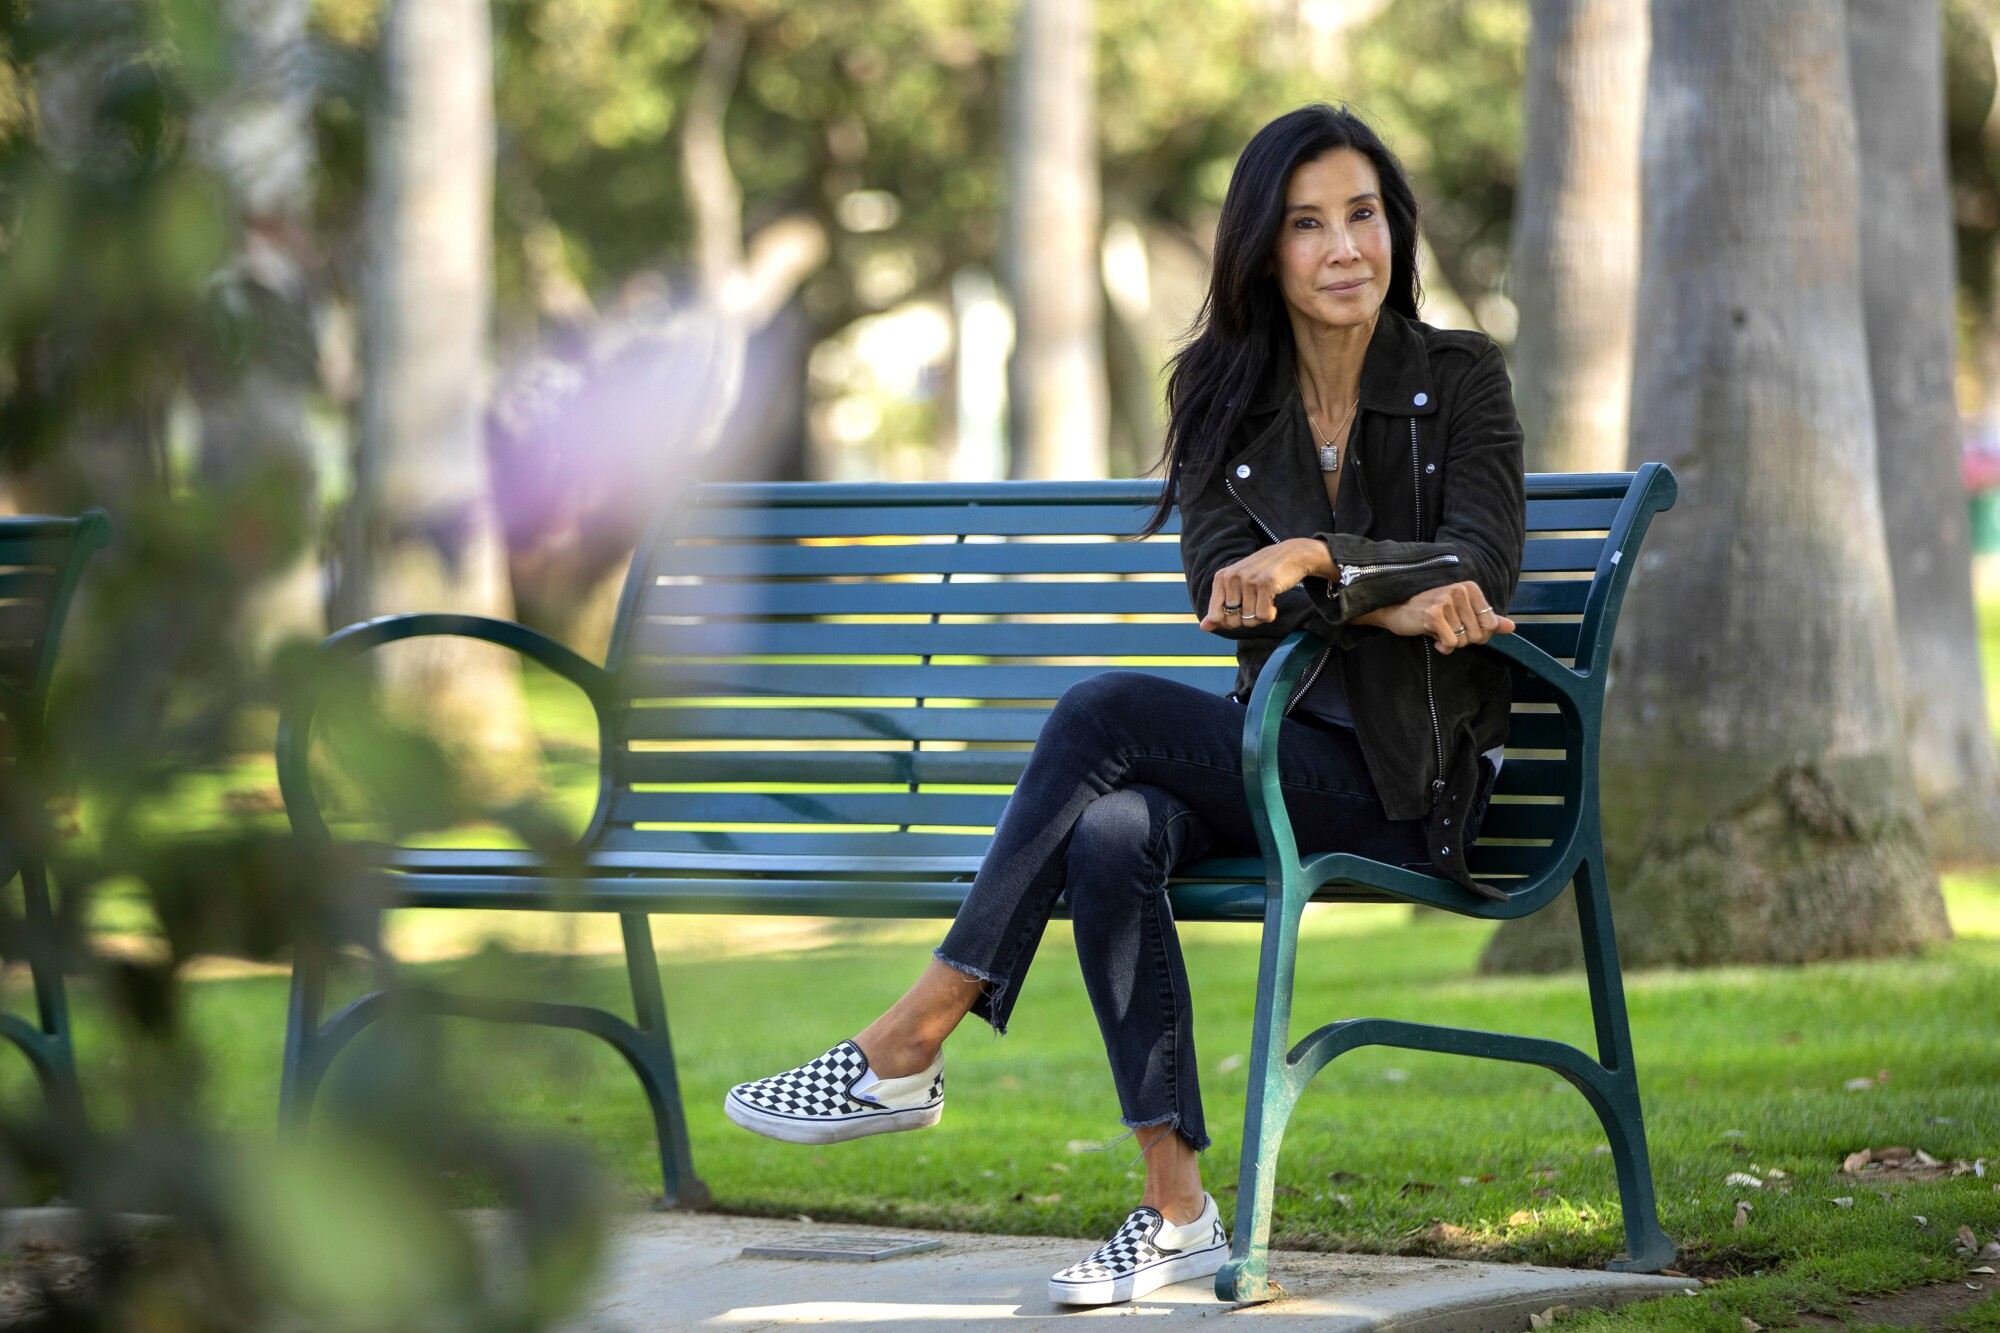 Journalist Lisa Ling sits on a bench in a park.